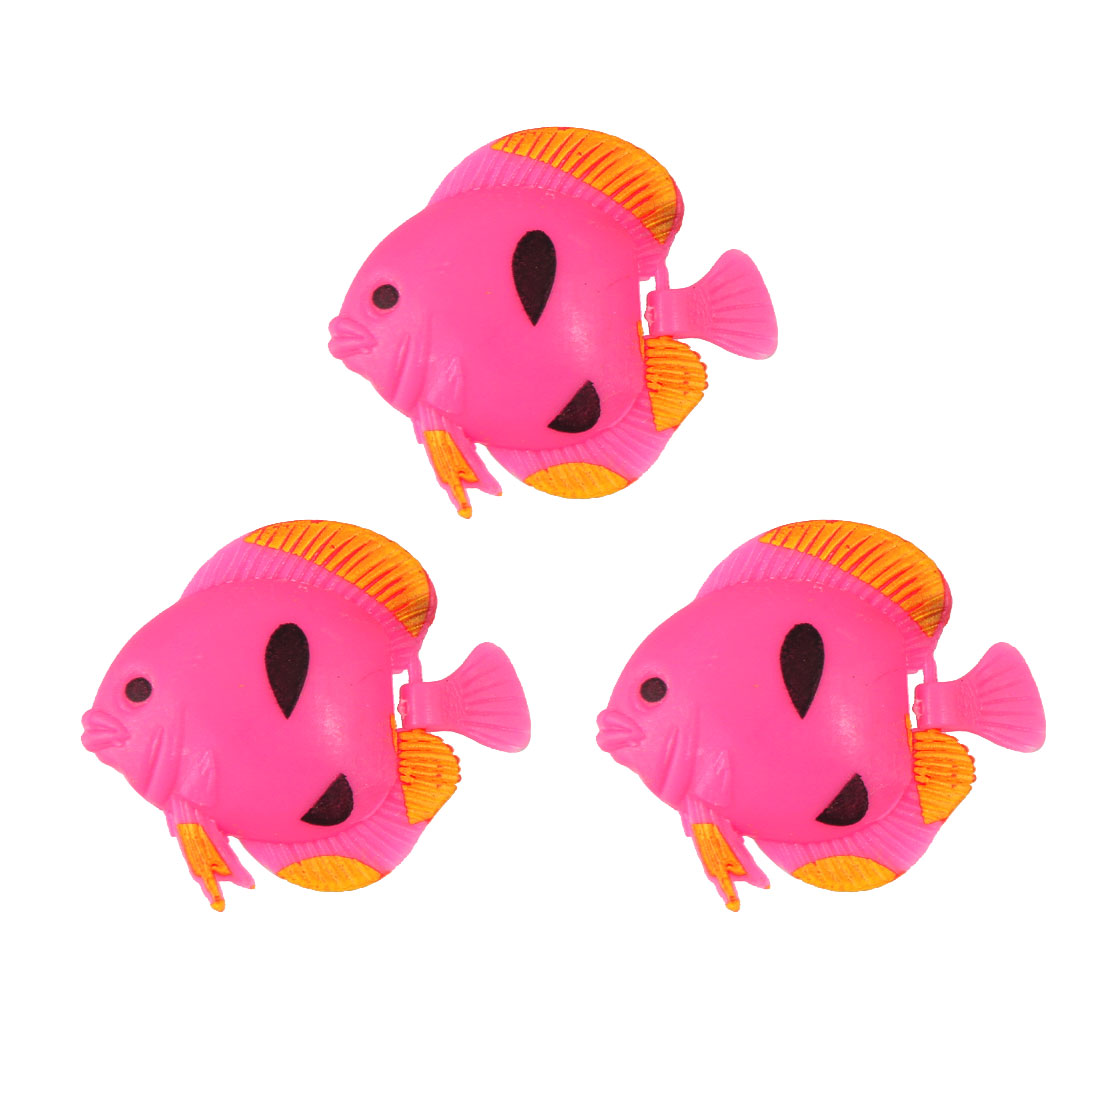 3 Pcs Black Prints Hot Pink Plastic Floating Fish Decoration for Aquarium